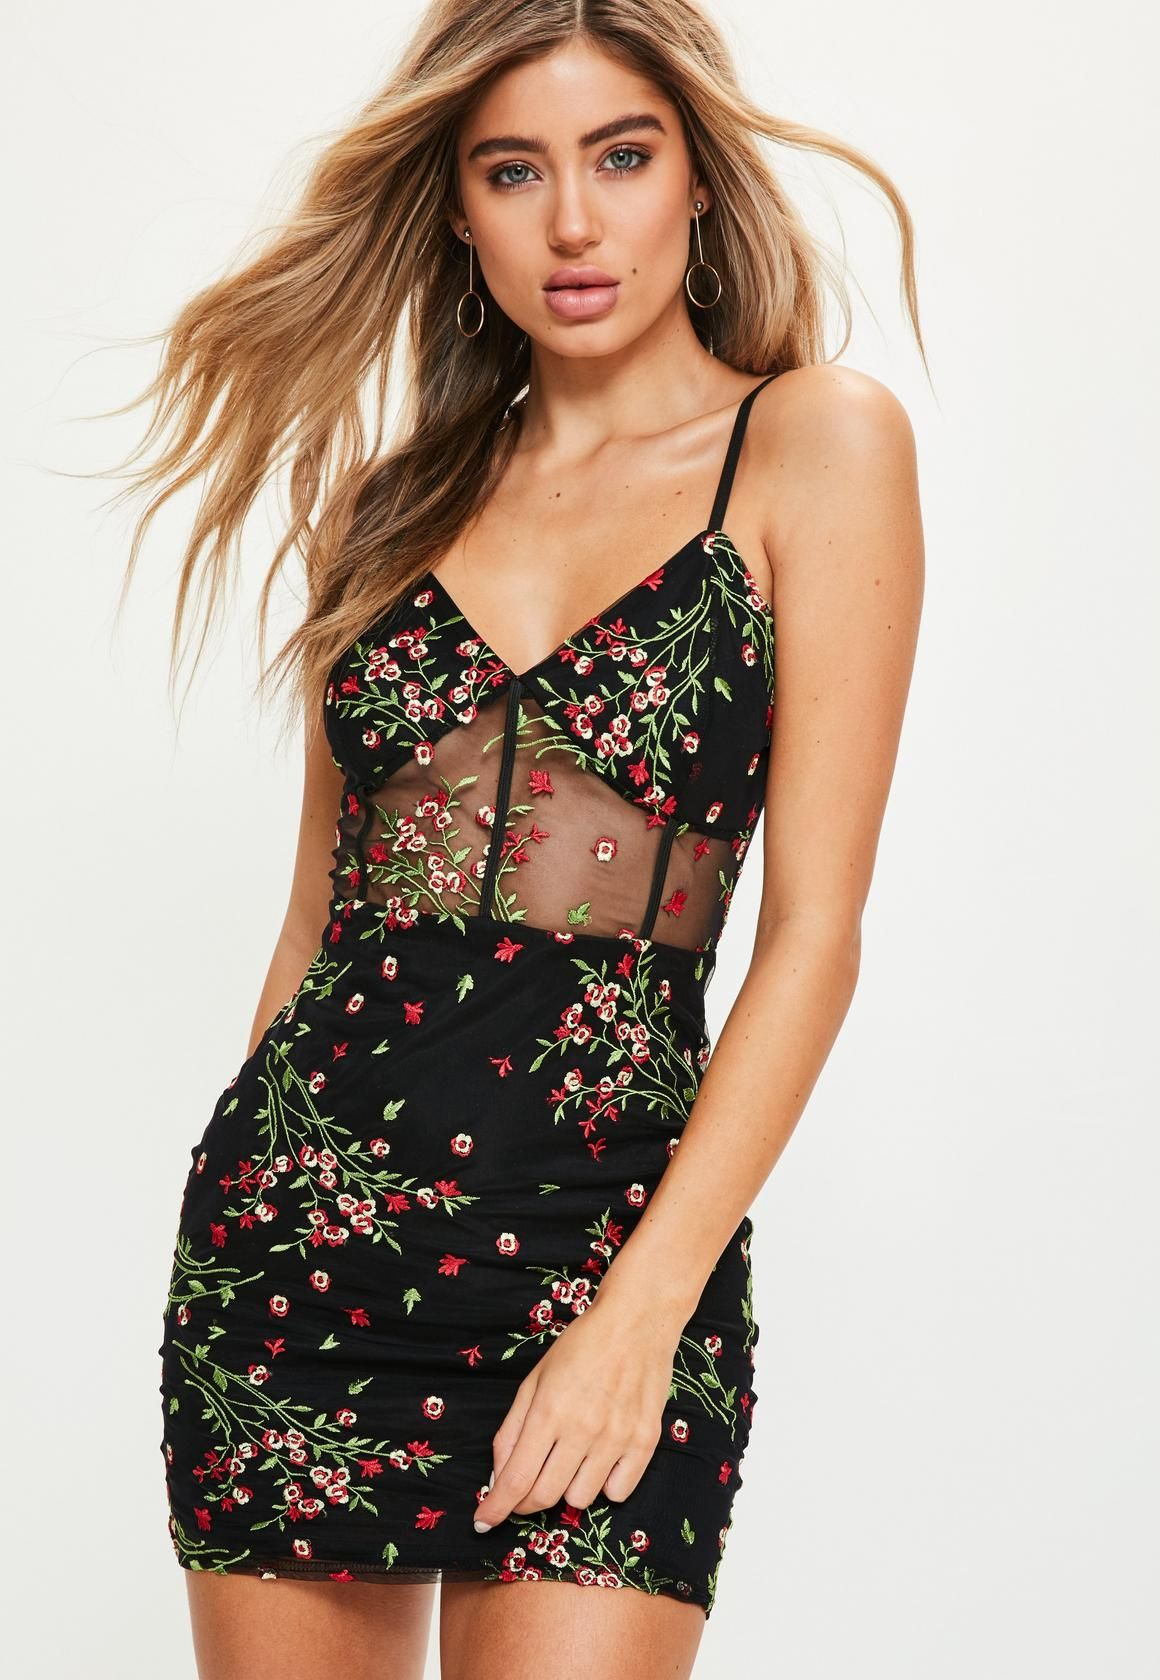 407138d2469 Missguided - Black Mesh Floral Embroidered Strappy Bodycon Dress Day Dresses,  Short Dresses, Prom